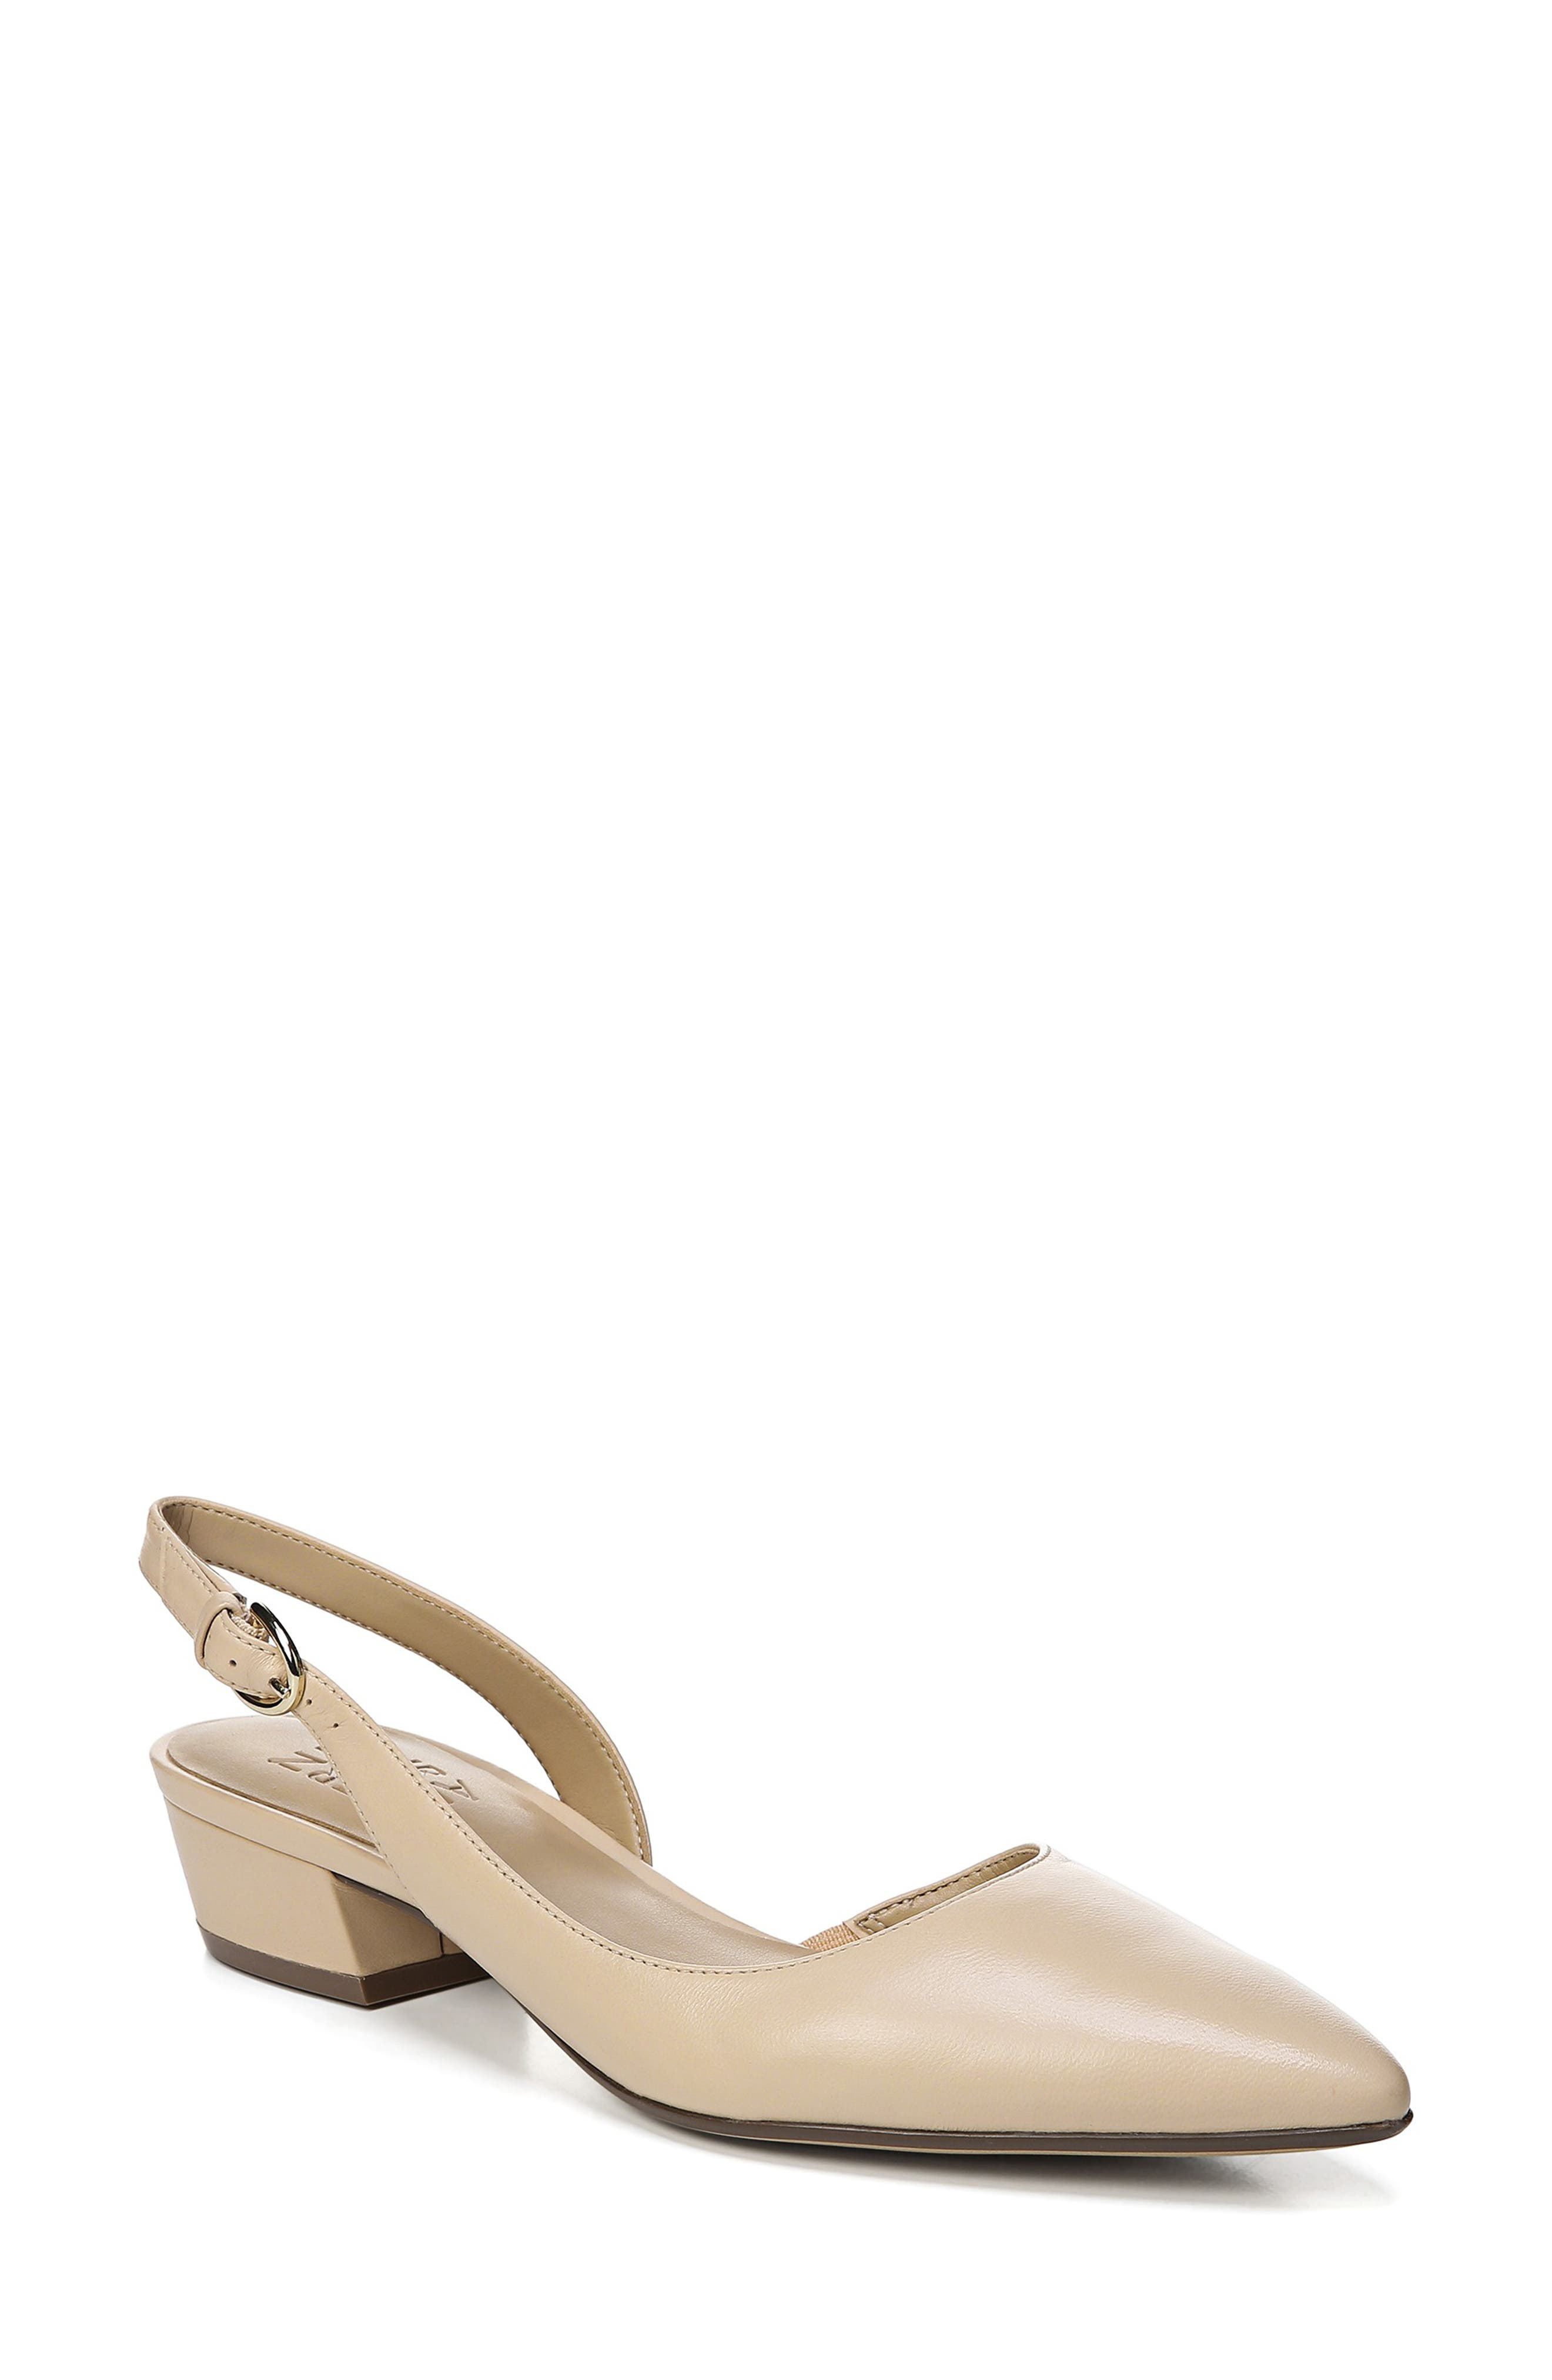 NATURALIZER, Banks Pump, Main thumbnail 1, color, SOFT NUDE LEATHER